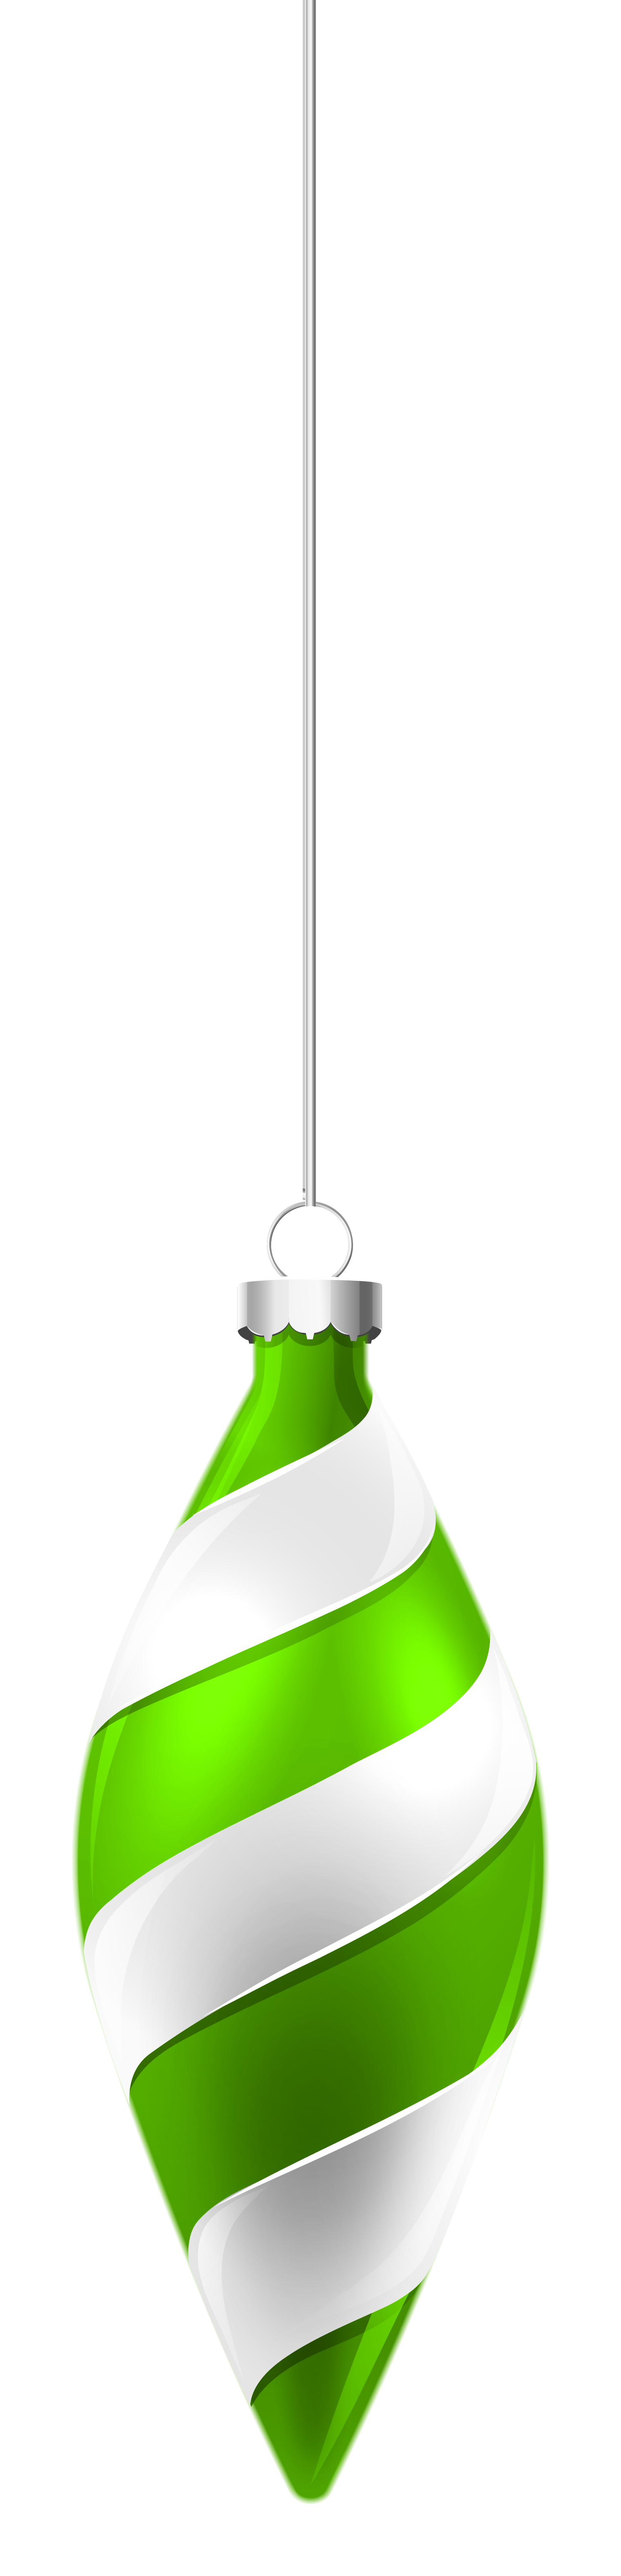 Green christmas ornaments clipart clipart freeuse library White and Green Christmas Ornament PNG Clipart Image | Gallery ... clipart freeuse library